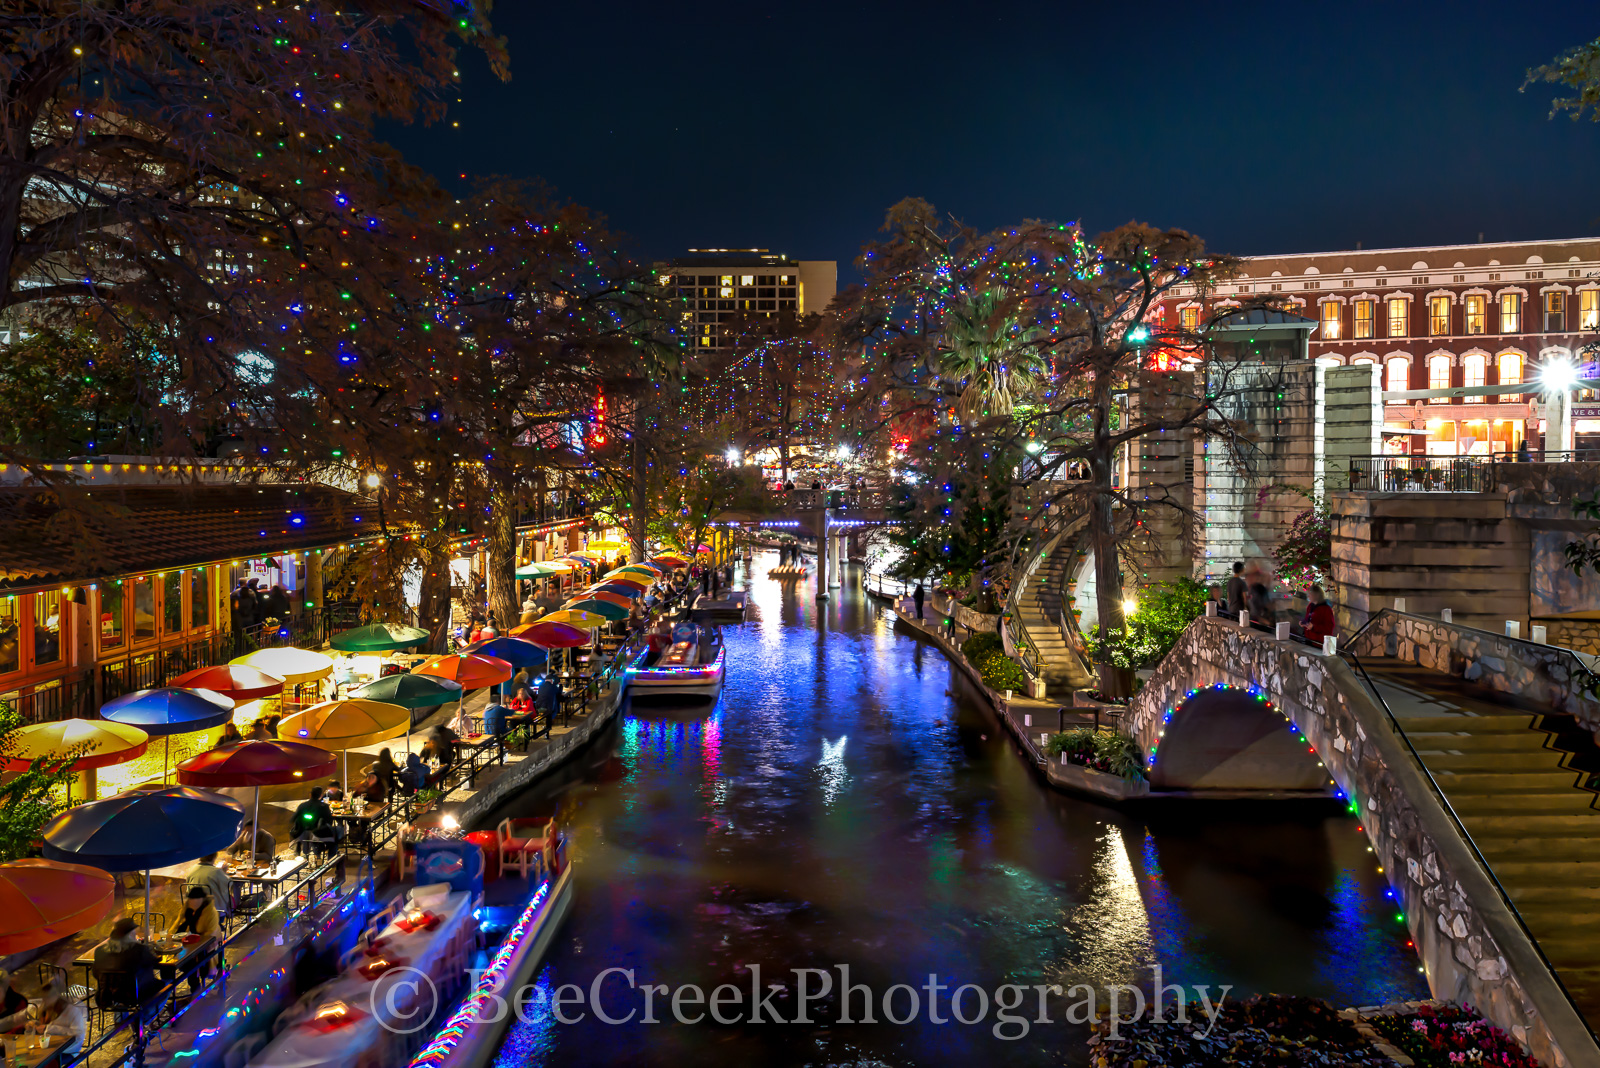 Christmas, River Walk, Riverwalk, San Antonio, river boats, cityscape, cityscapes, decorations, festive, festivities, holiday, lights, season,, photo